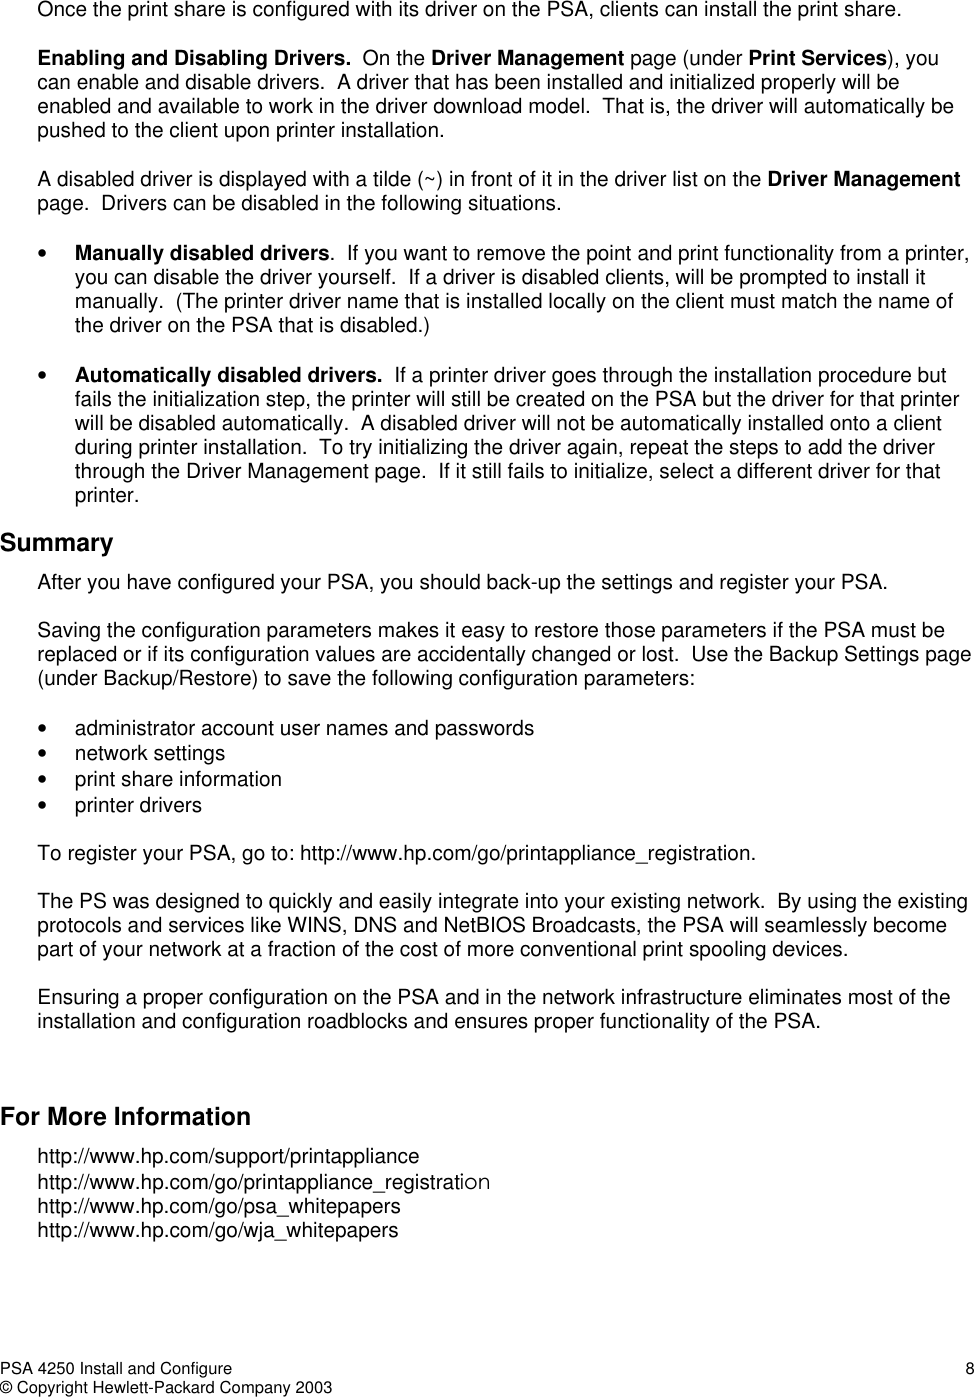 Hp Print Server Appliance 4250 Users Manual Install_configure_24